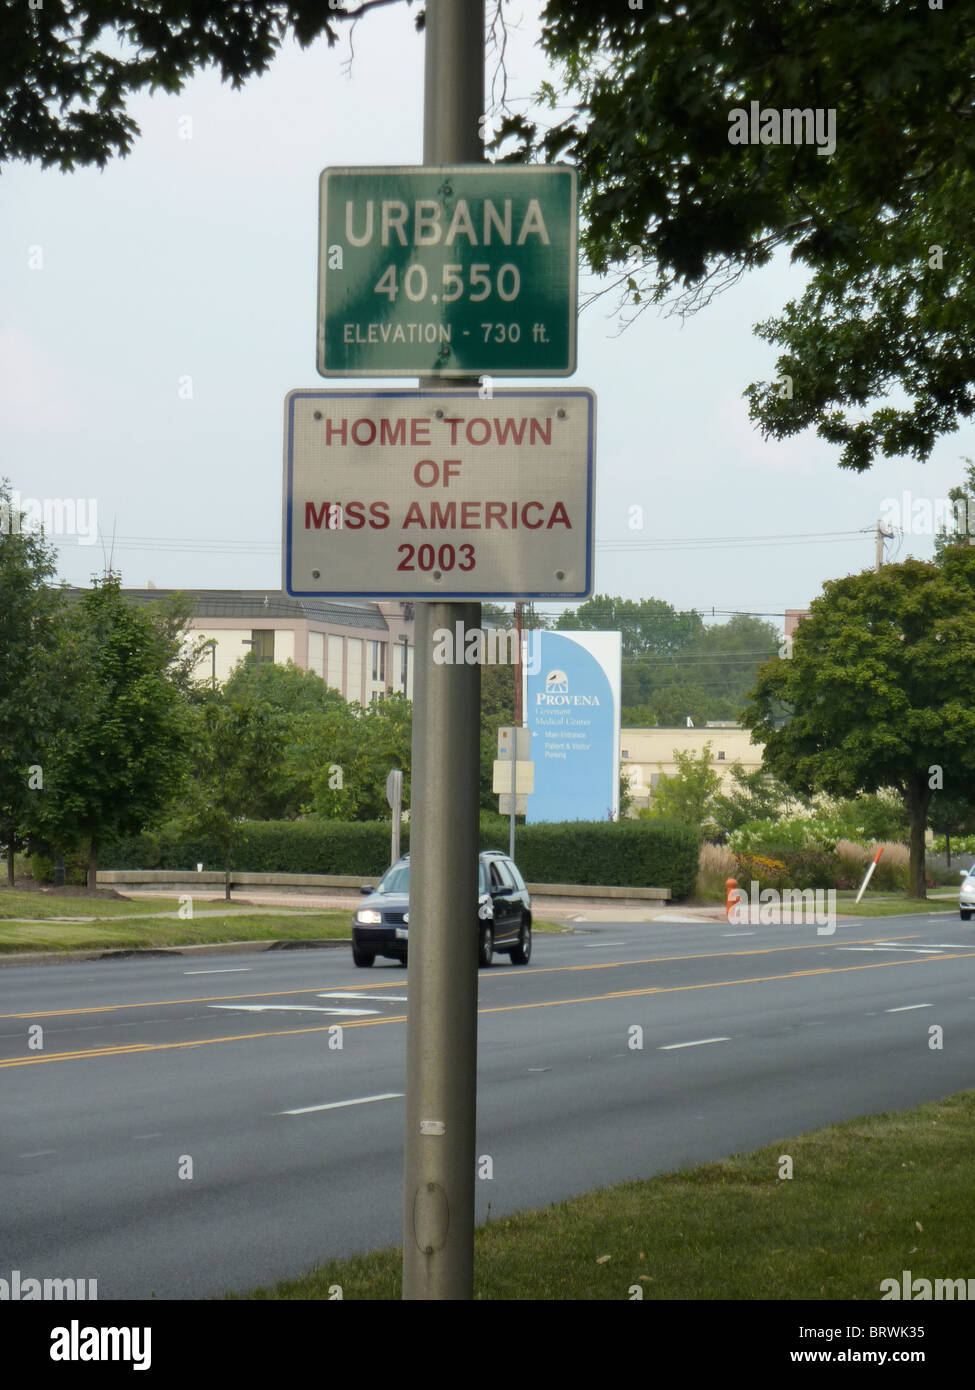 Urbana Illinois road sign 'Home town of Miss America 2003' - Stock Image